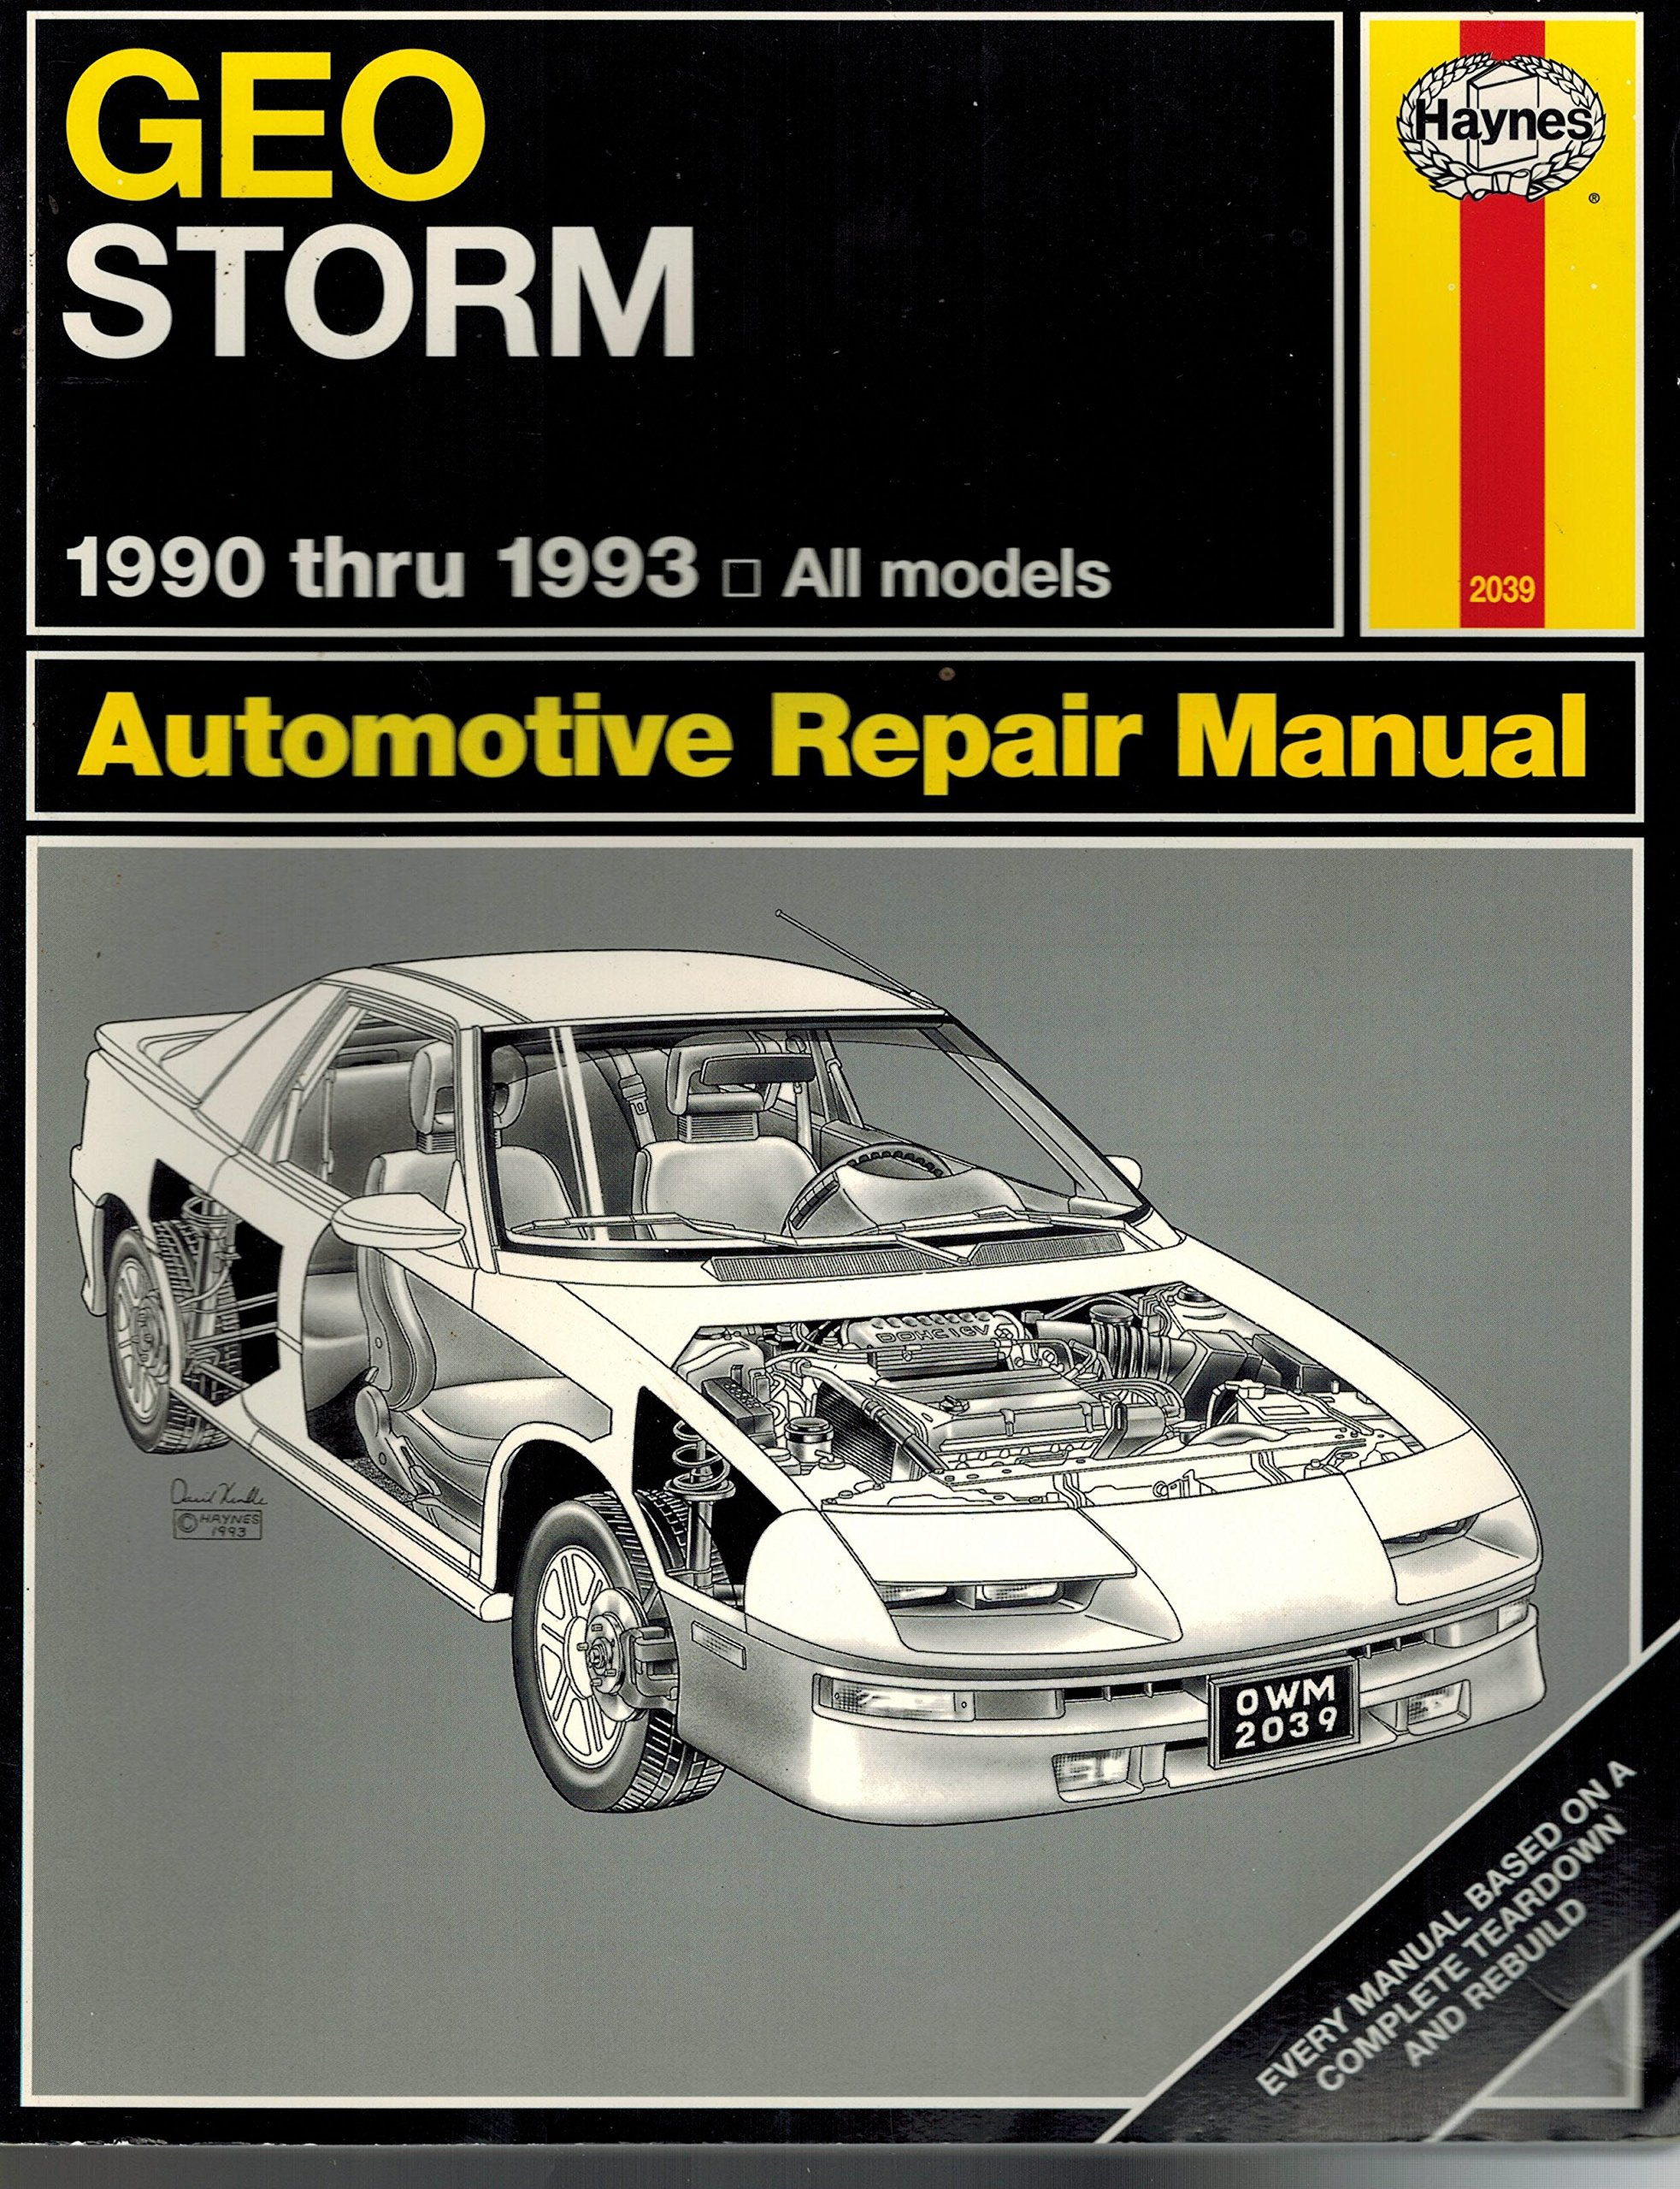 Geo Storm Automotive Repair Manual, 1990 Through 1993 All Models: Robert /  Haynes, John Maddox: Amazon.com: Books